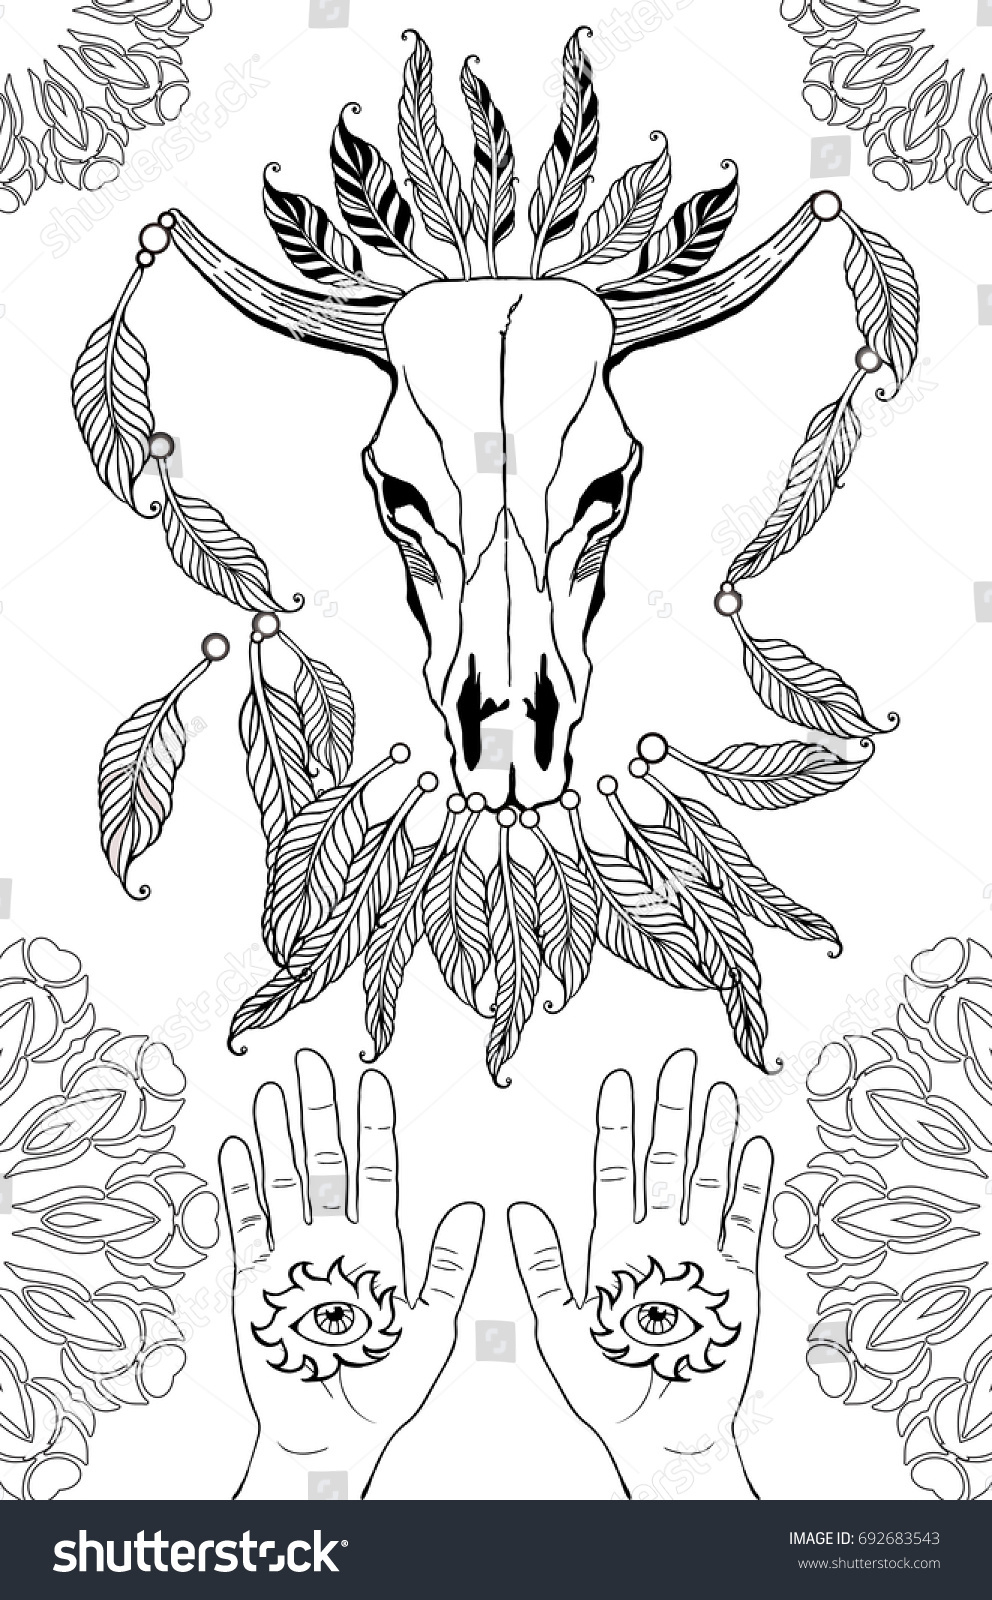 free new age coloring pages - photo#16